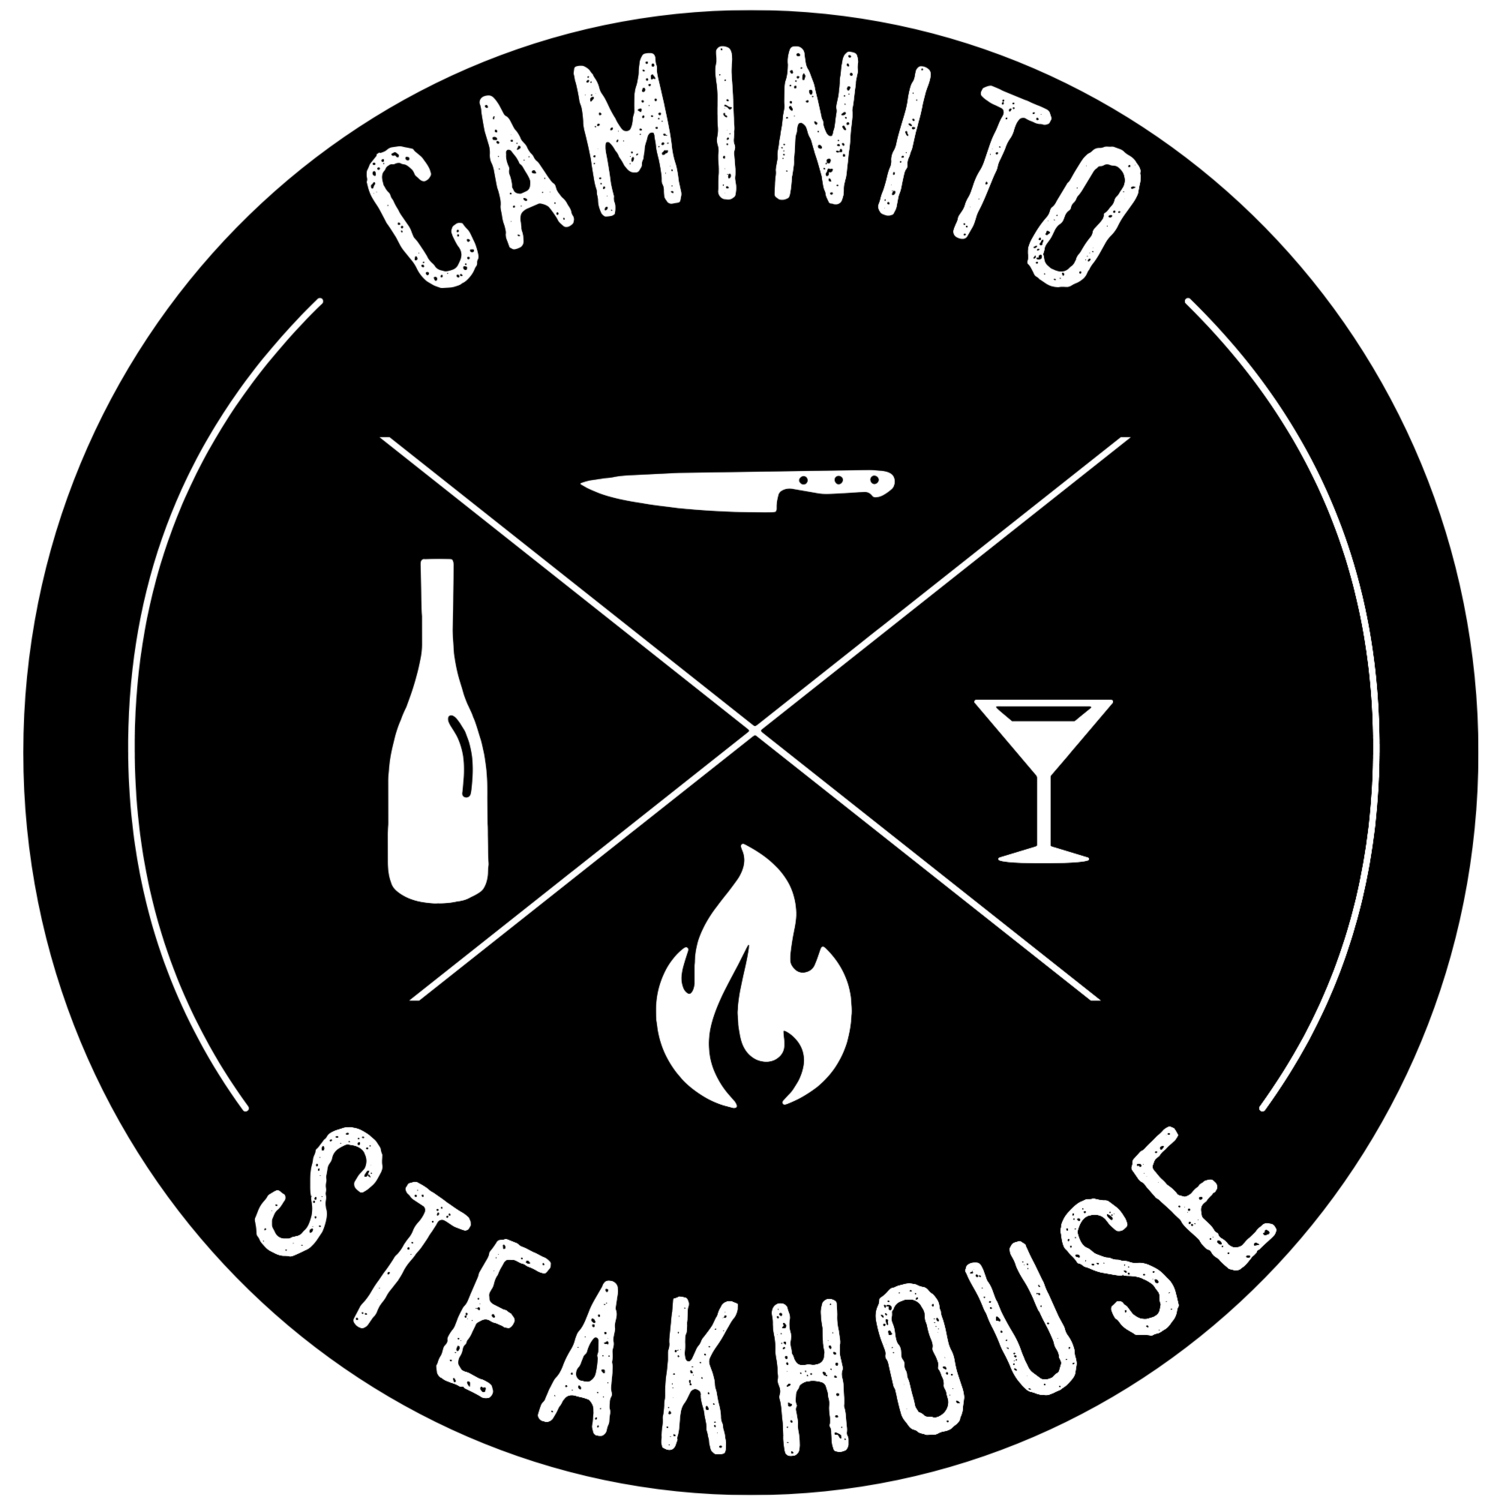 Caminito Steakhouse